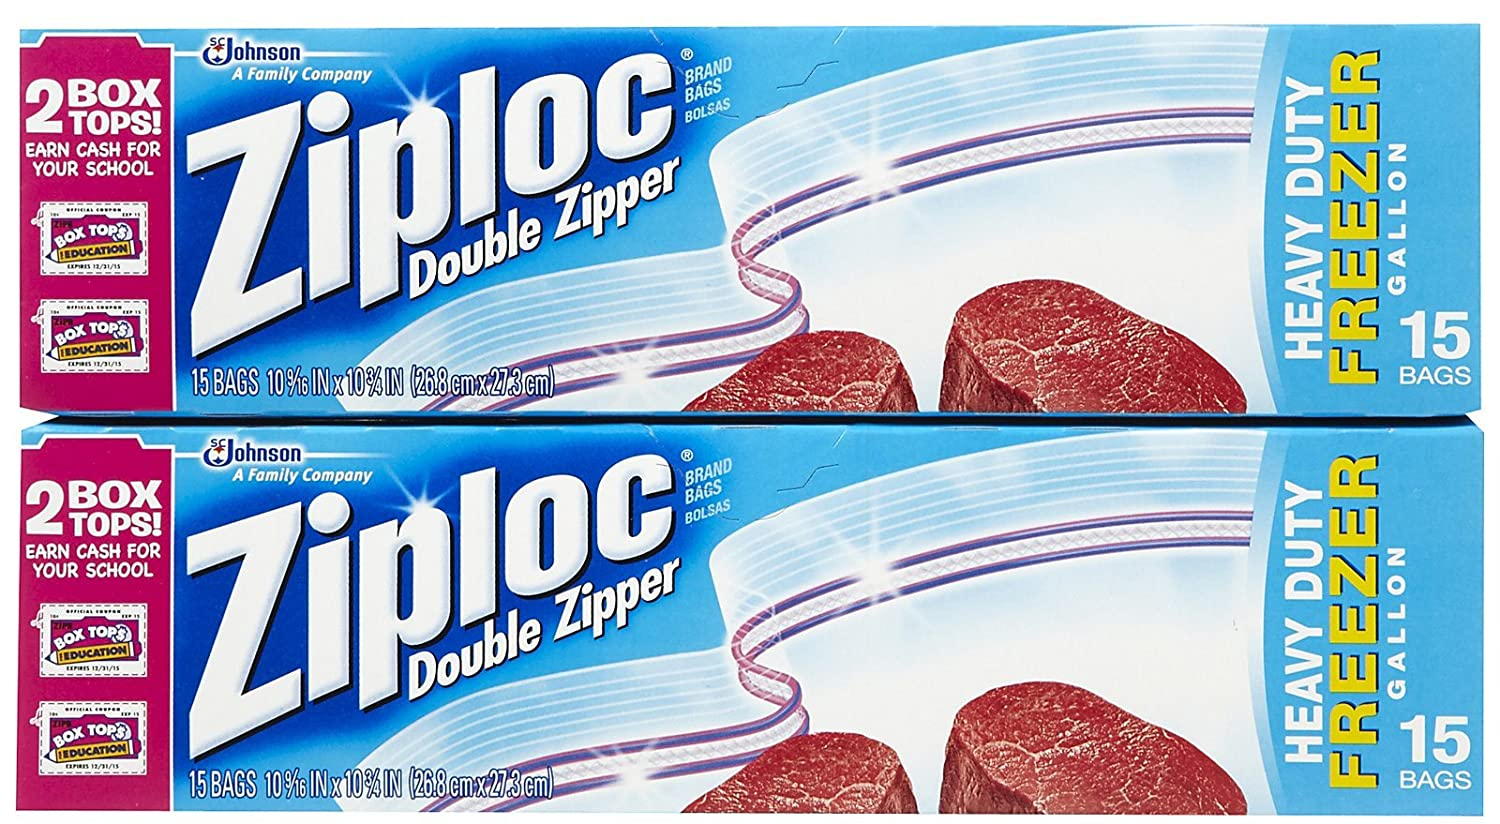 Amazon.com: Ziploc Freezer Bags - 1 gal - 15 ct - 2 pk ...